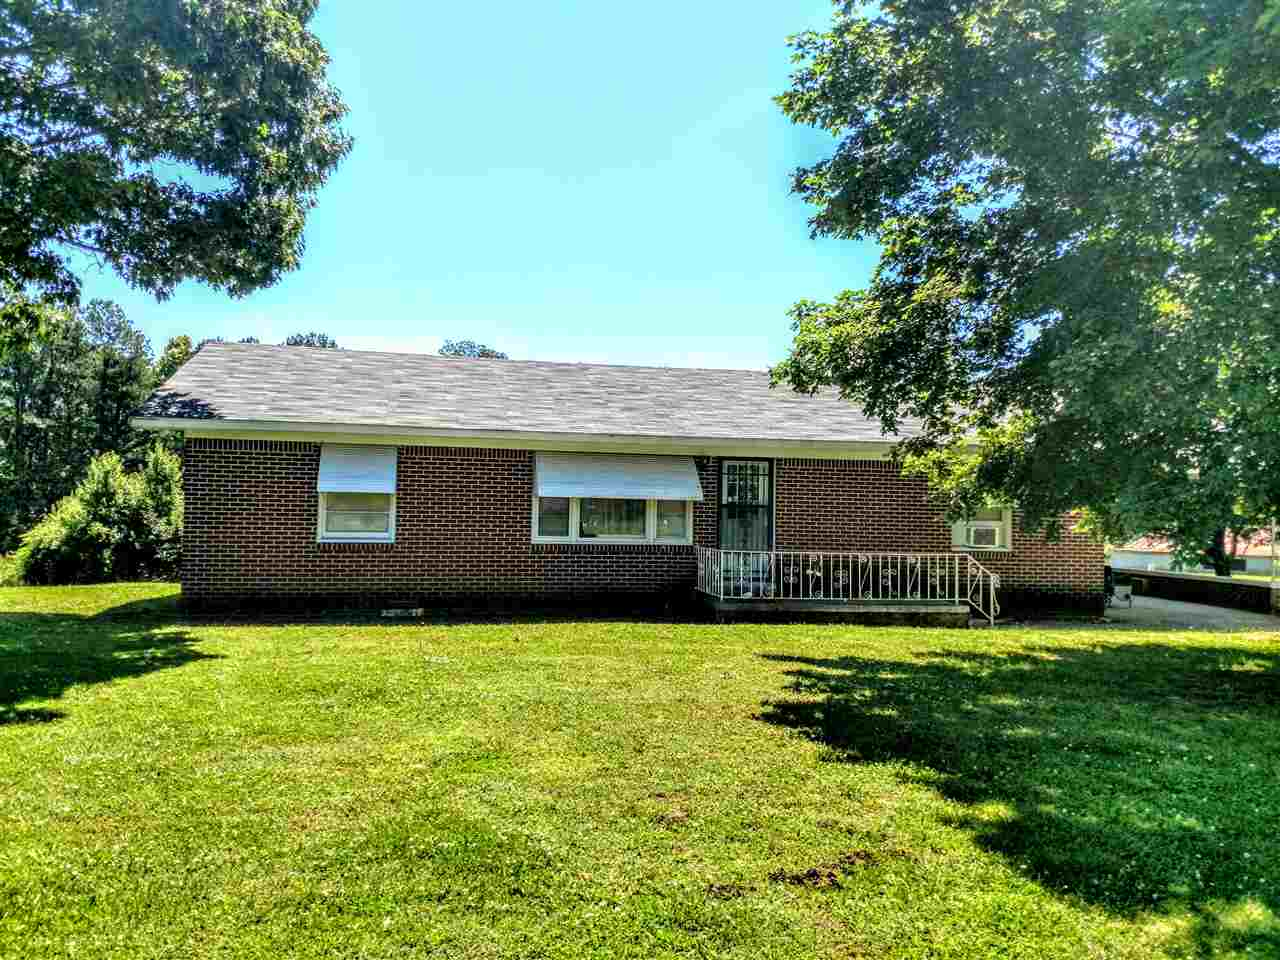 2315 U S Hwy 45 Bypass,Trenton,Tennessee 38382,3 Bedrooms Bedrooms,1 BathroomBathrooms,Residential,2315 U S Hwy 45 Bypass,188390